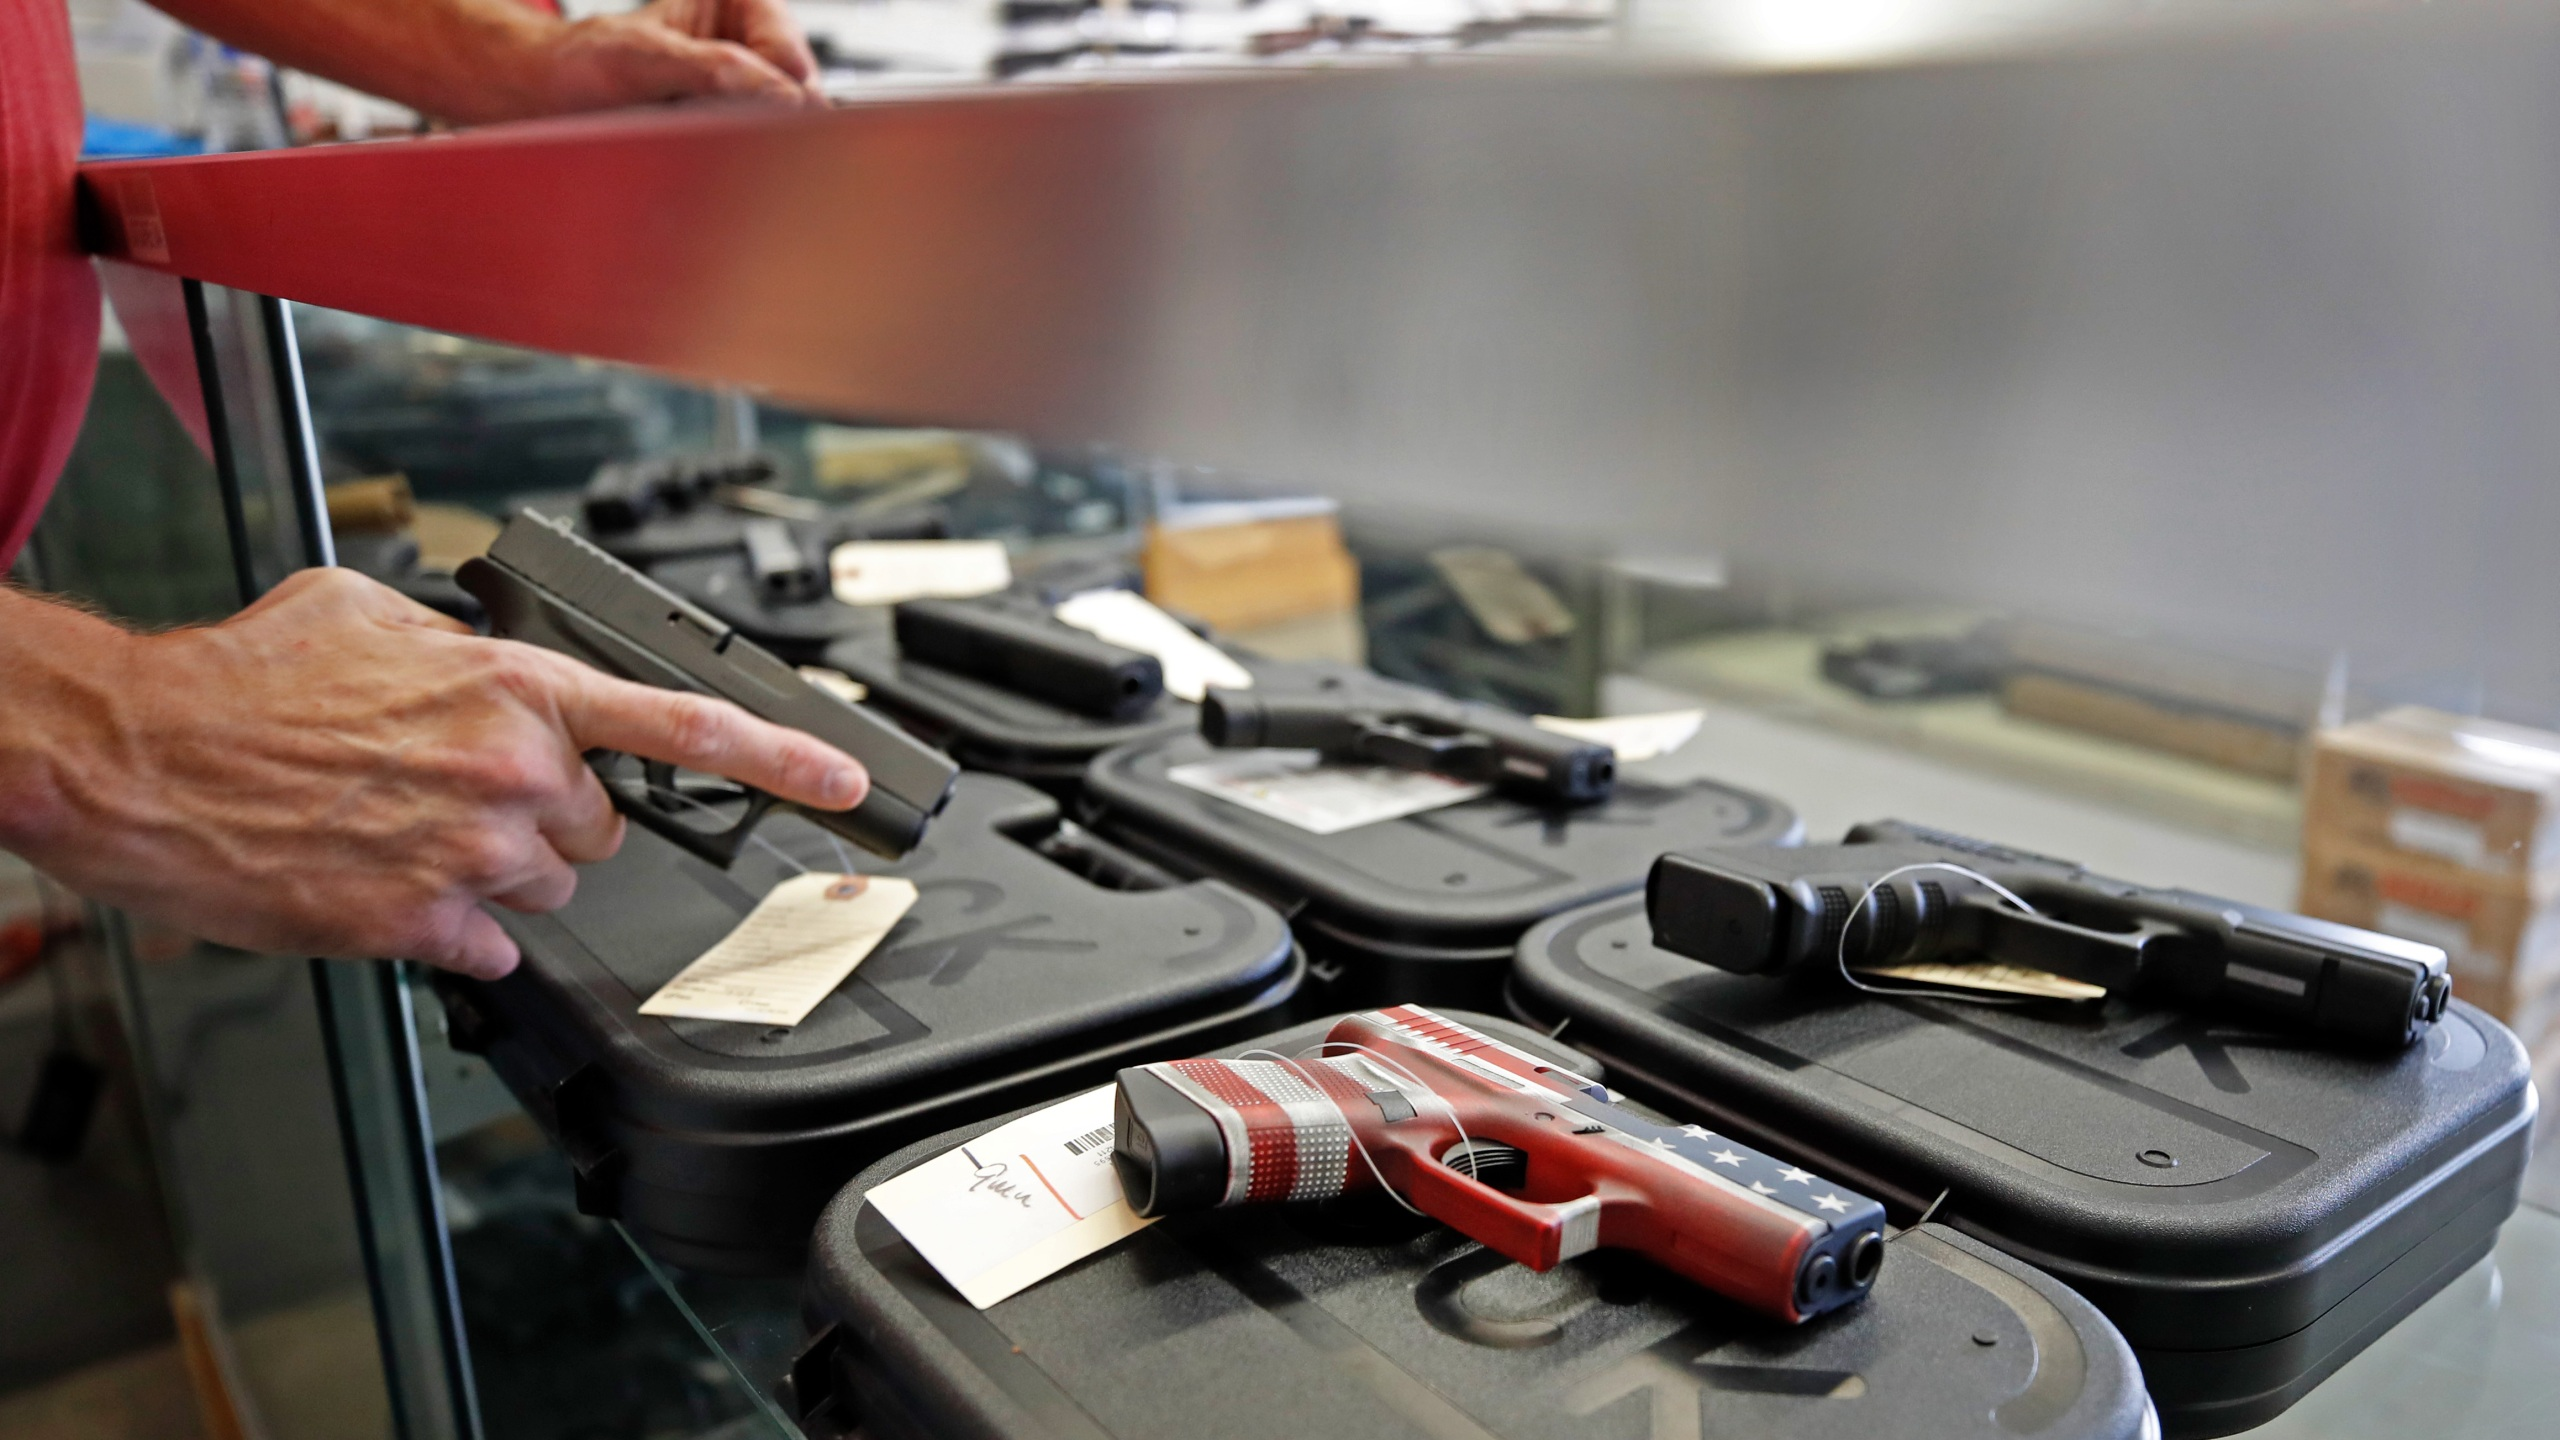 A worker restocks handguns at Davidson Defense in Orem, Utah